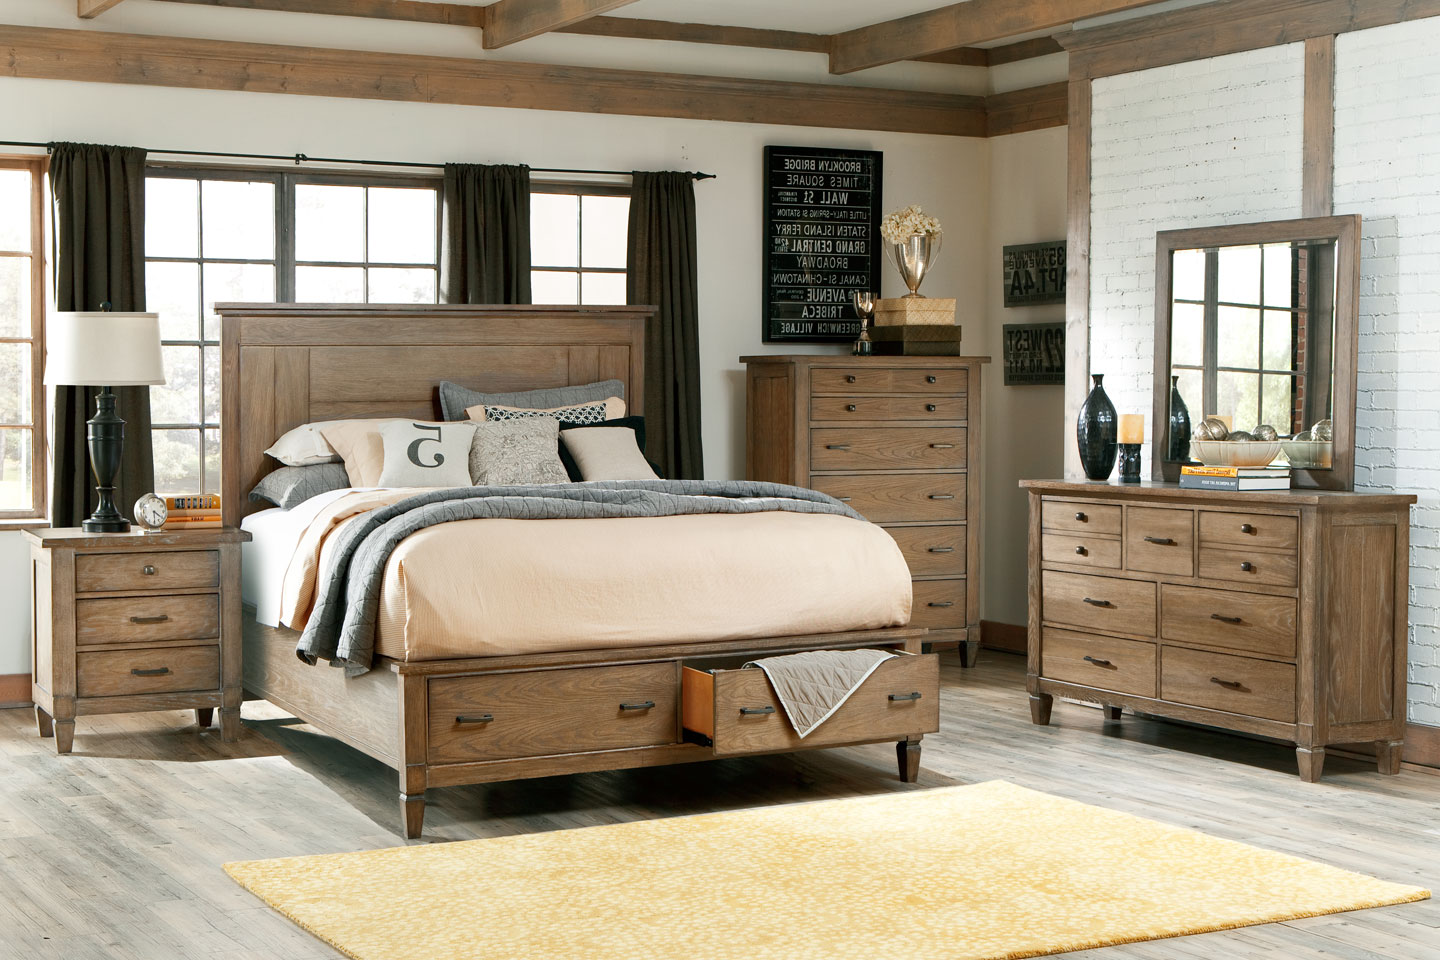 gavin wood bedroom furniture collection wood bedroom bedroom design tips with modern bedroom furniture